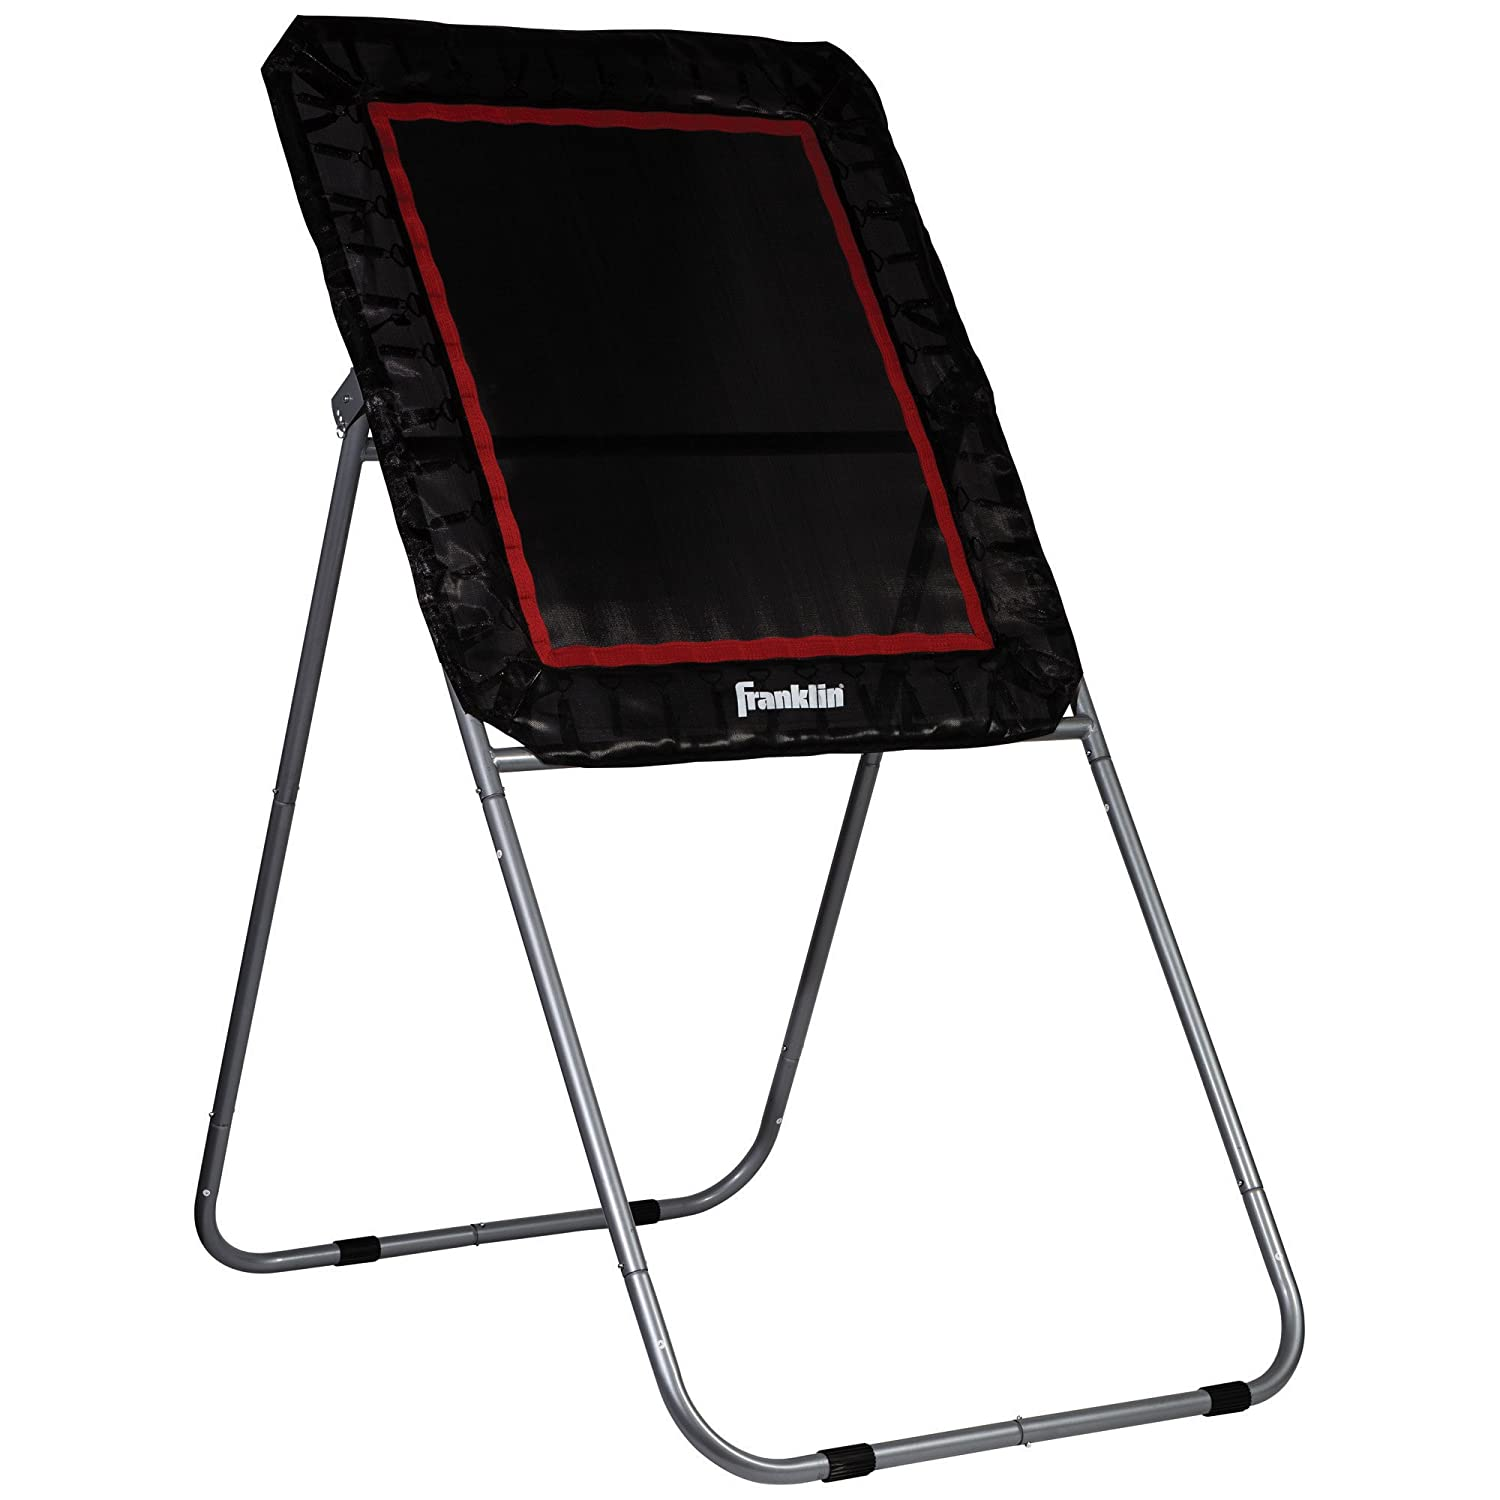 Franklin Sports Lacrosse Rebounder - Lacrosse Bounce Back Rebound Target - Easy to Store and Portable - Perfect for Practice - 4' x 3' Rebound Target